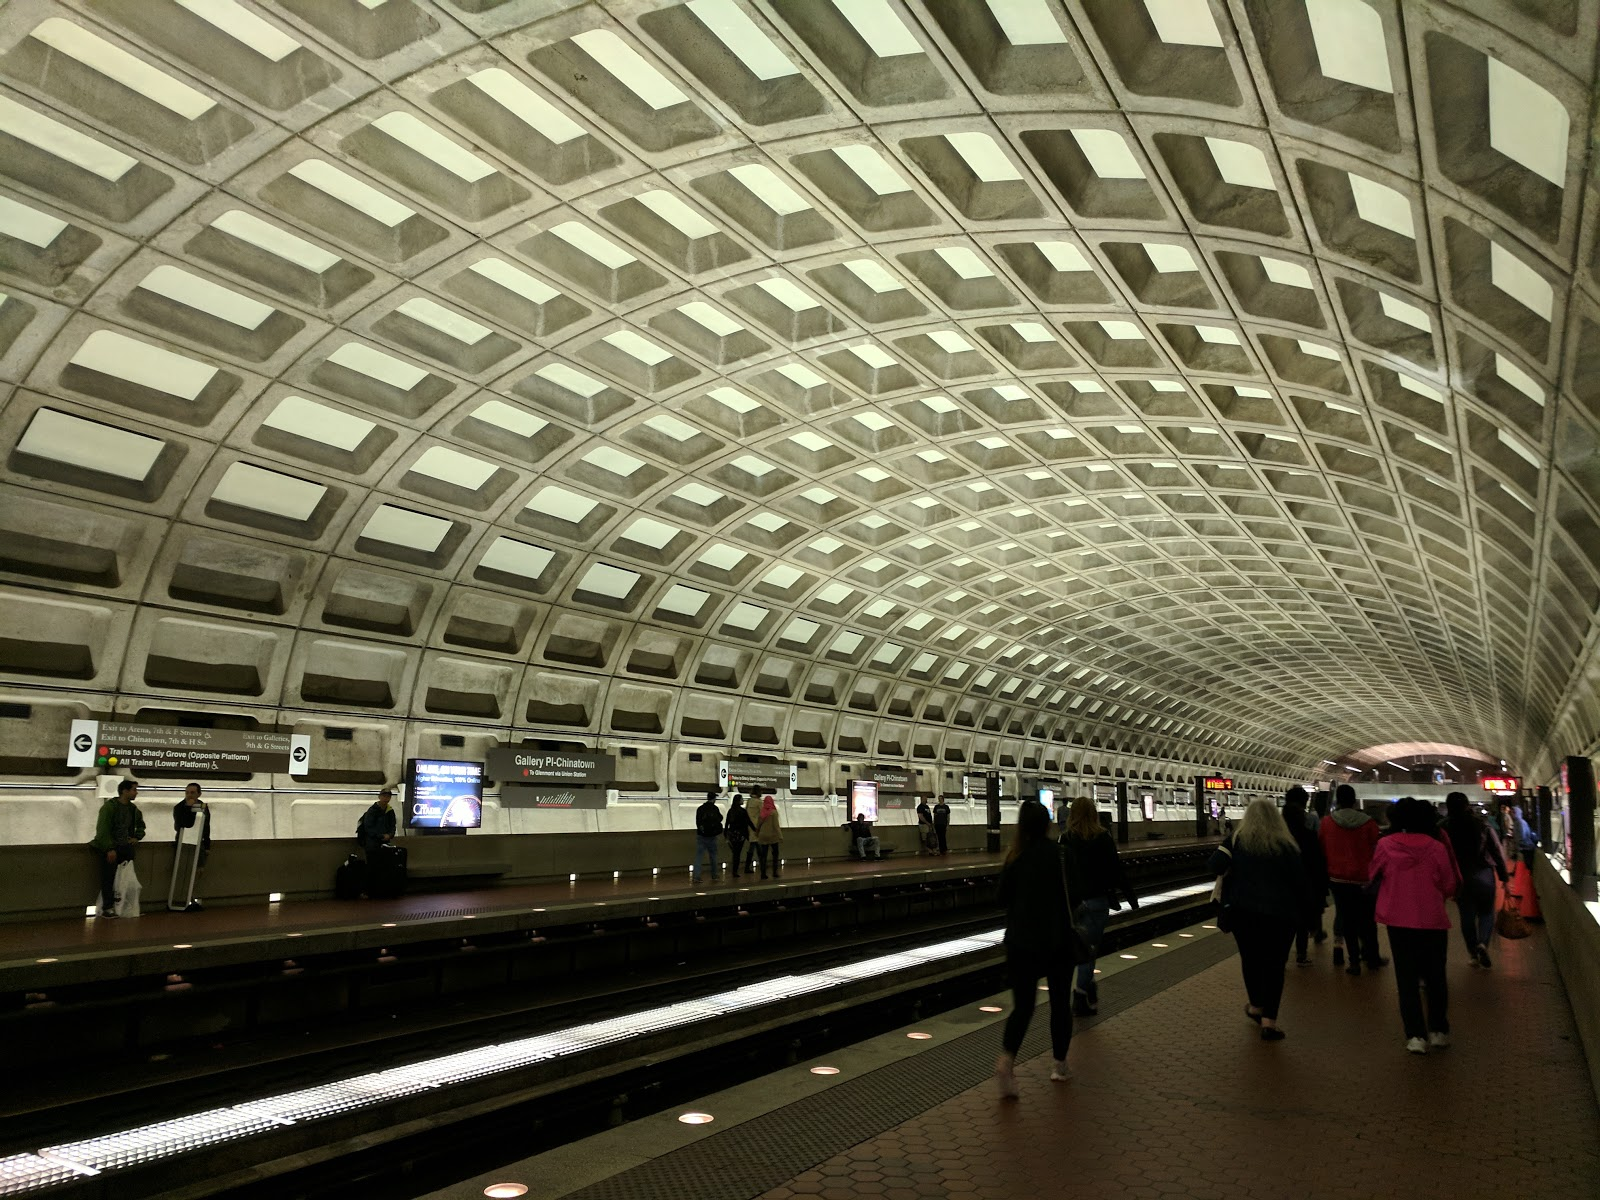 The DC Metro, winner of the AIA's 25-Year Award